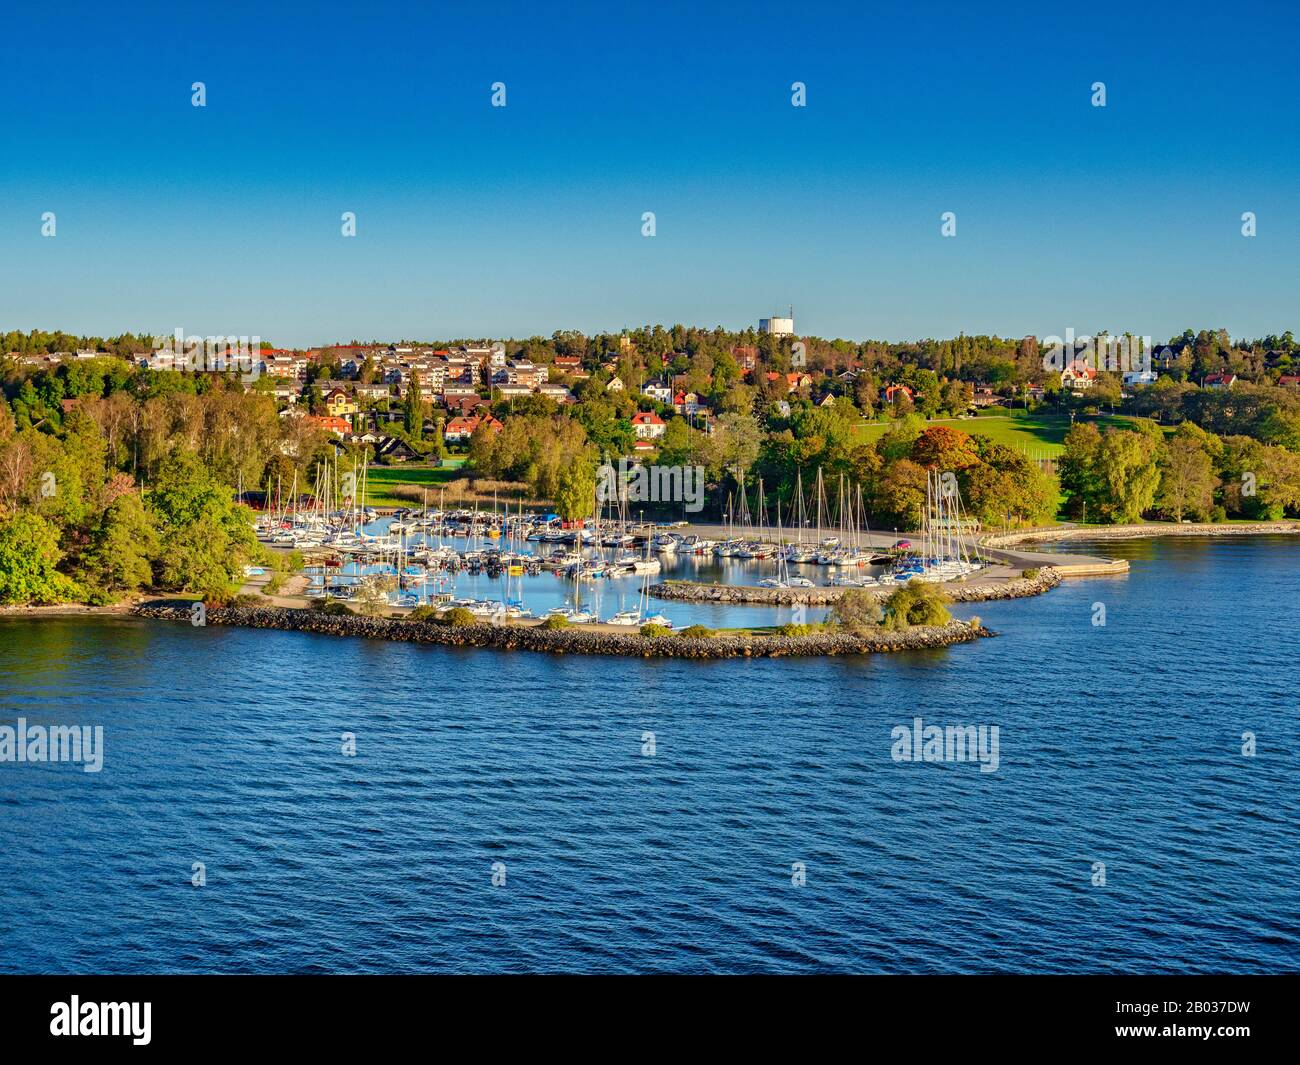 A view of the island of Lidingo, Stockholm, Sweden, from the water, with houses in a green landscape and a marina, an example of the Swedish lifestyle Stock Photo